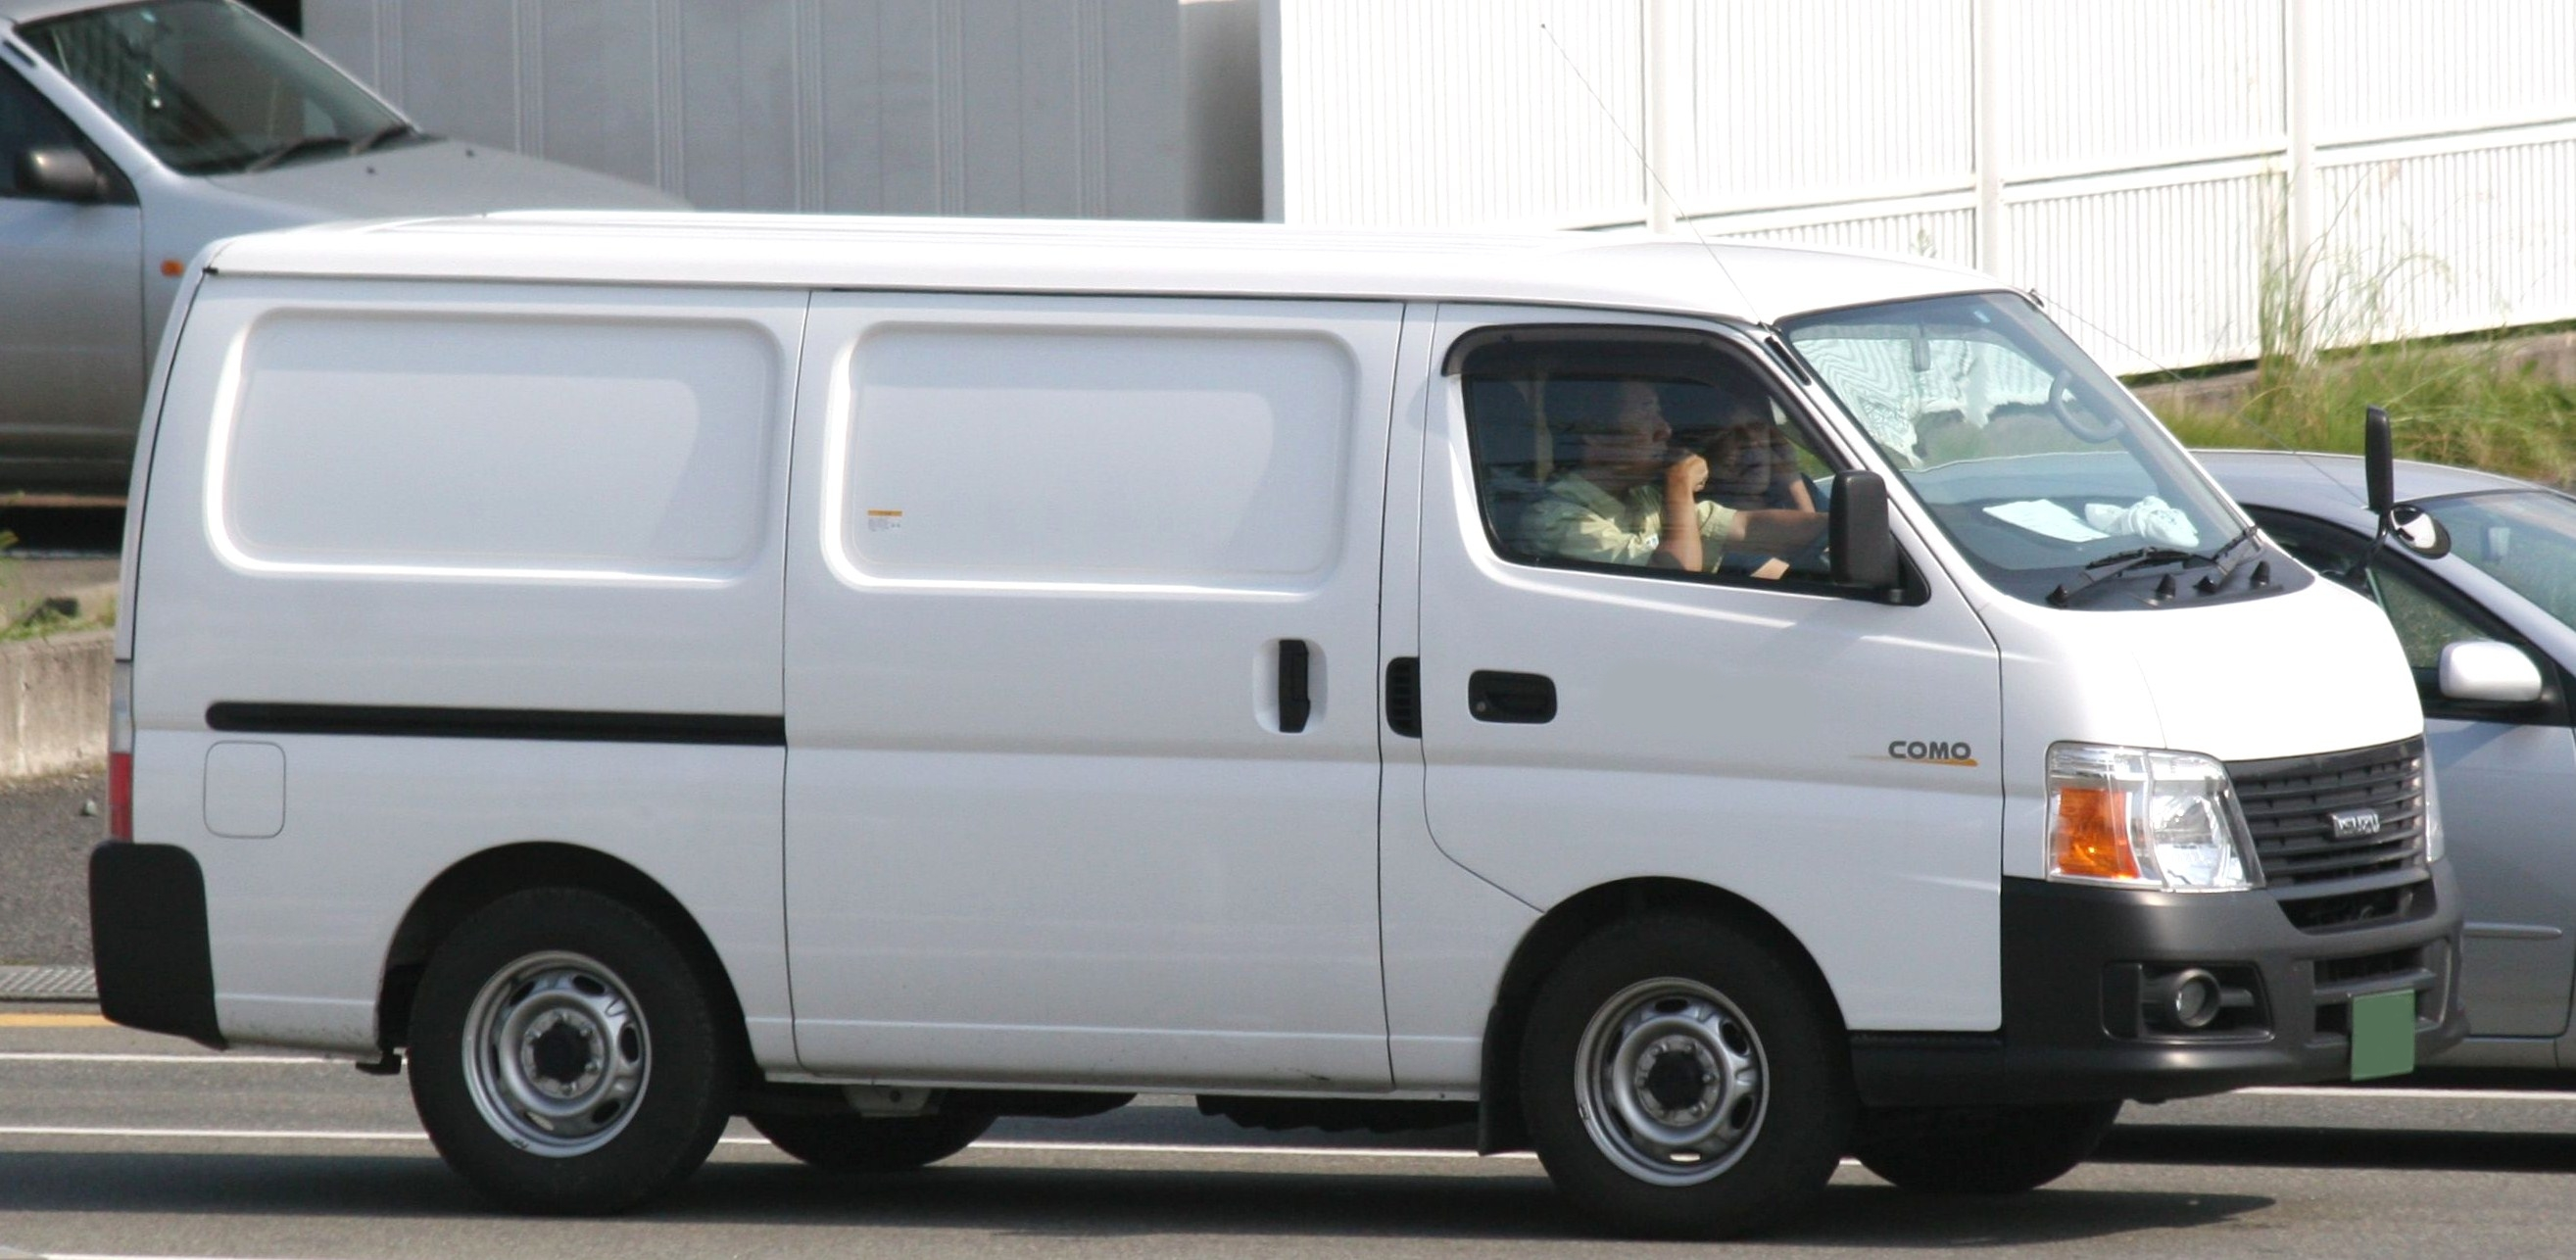 Moving Truck Rentals One Way Unlimited Mileage >> Panel Van Rental | Rent a Cargo Van